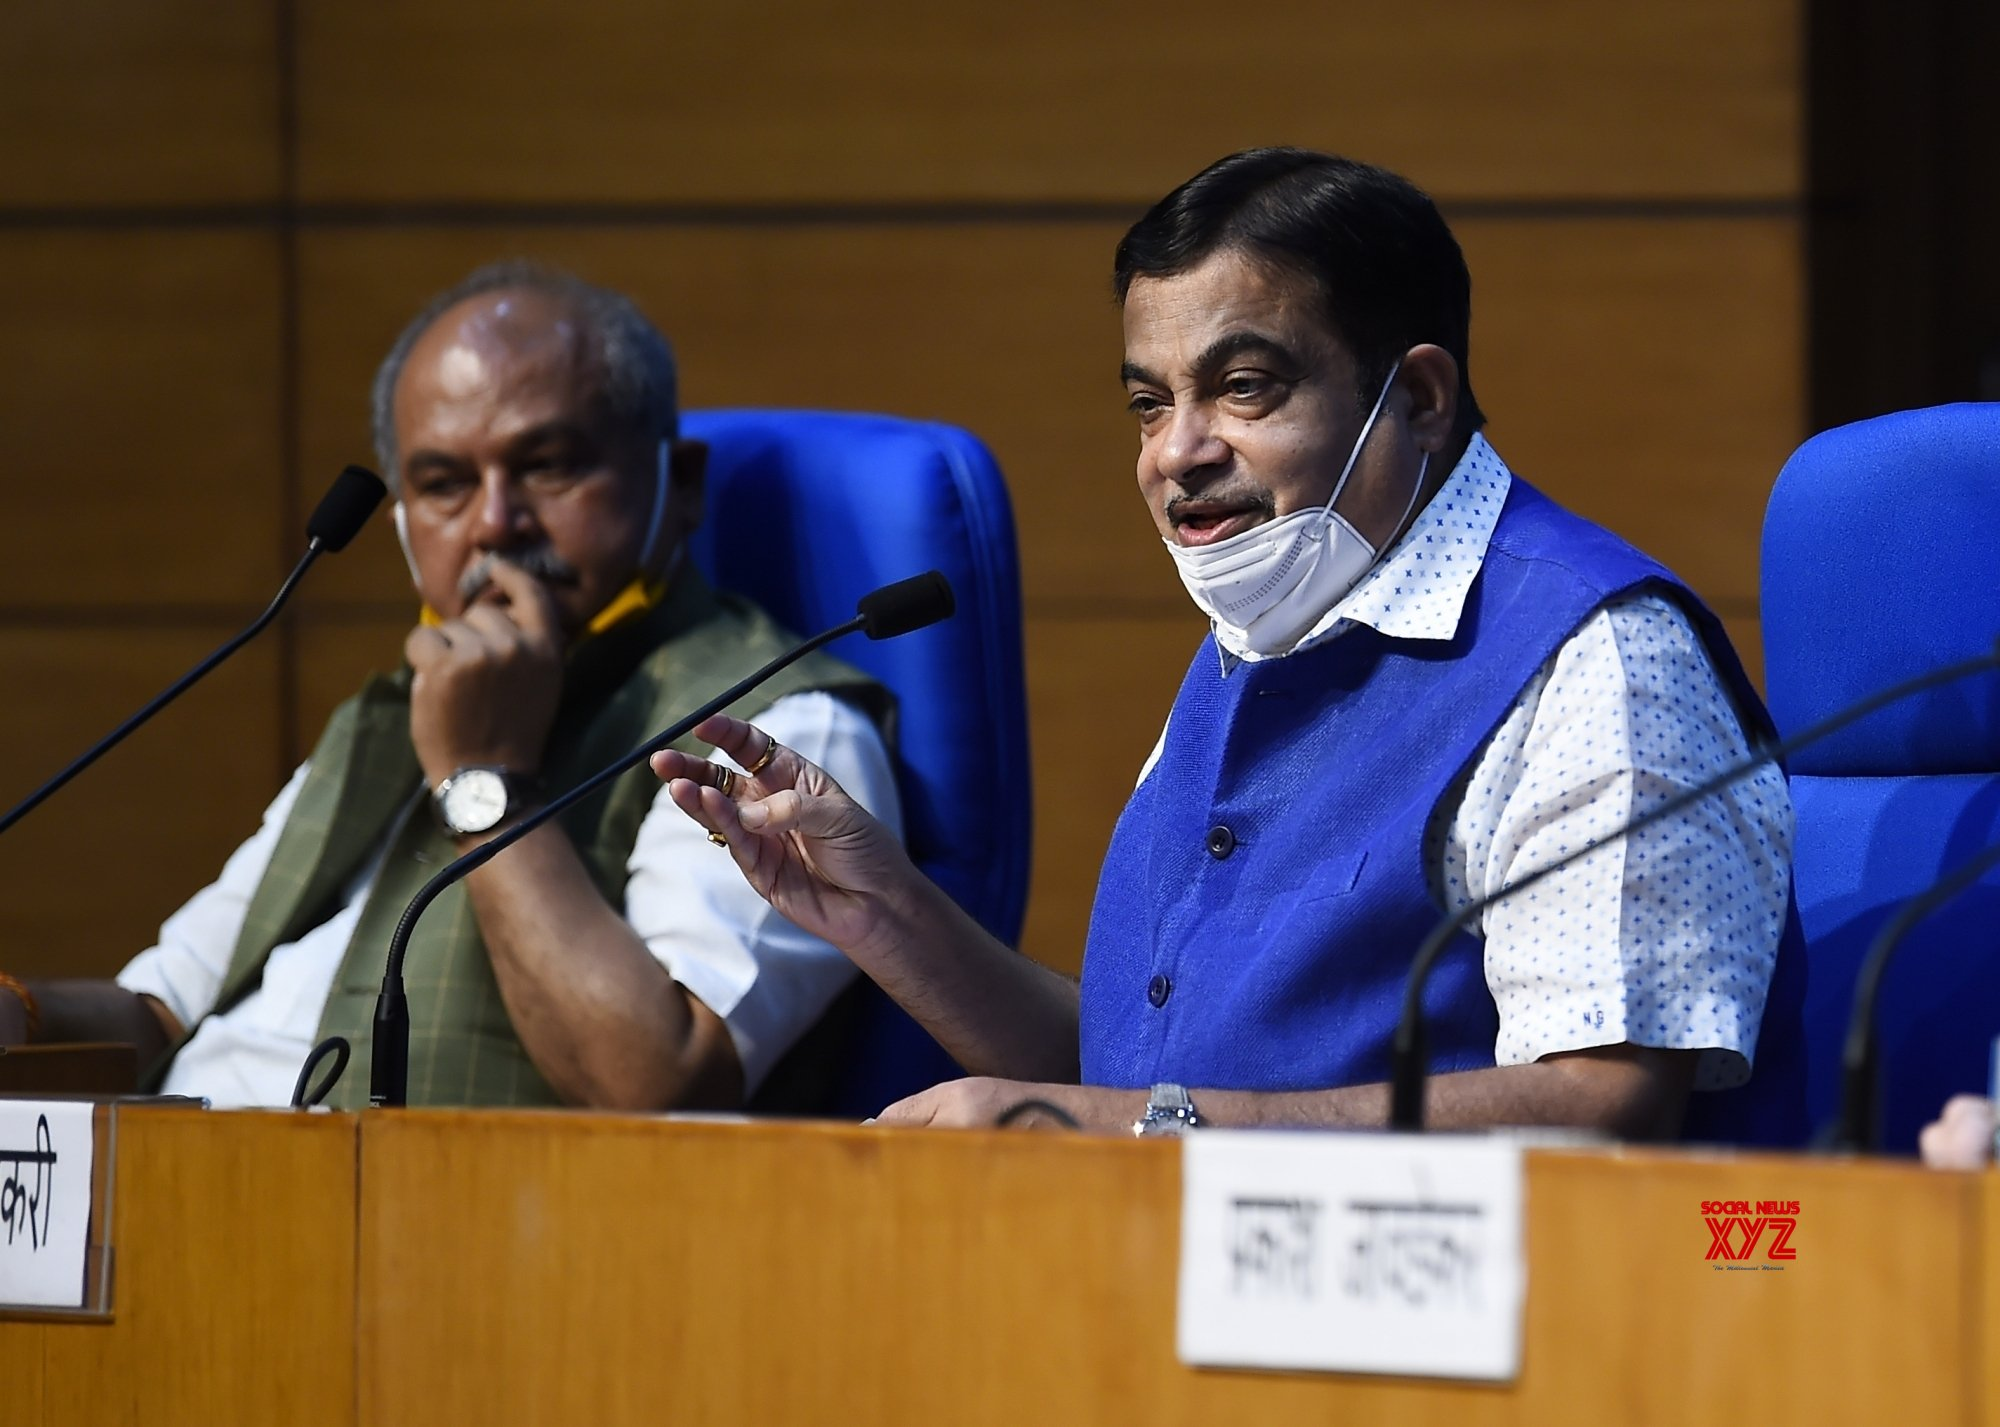 New Delhi: Nitin Gadkari, Narendra Singh Tomar brief the media on Cabinet decisions #Gallery